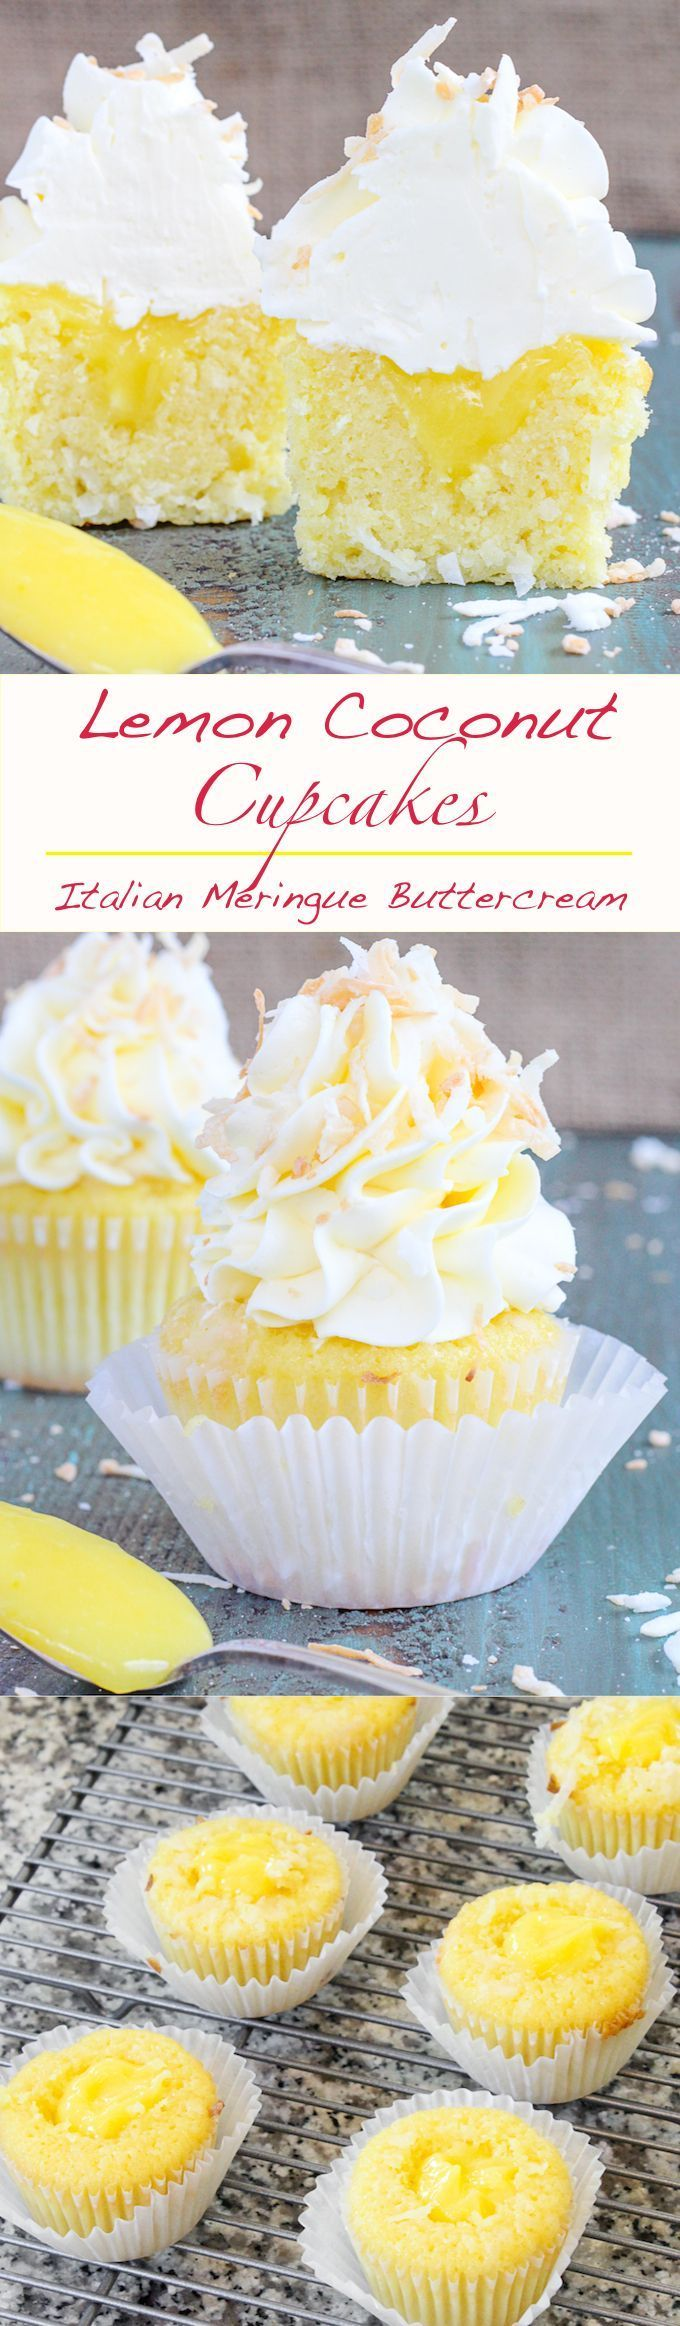 In these #Lemon #Coconut Cupcakes a moist coconut cupcake that is made with both dried coconut and coconut milk is filled with lemon curd and then topped with a coconut Italian Meringue Buttercream. And then topped off with some more toasted coconut.